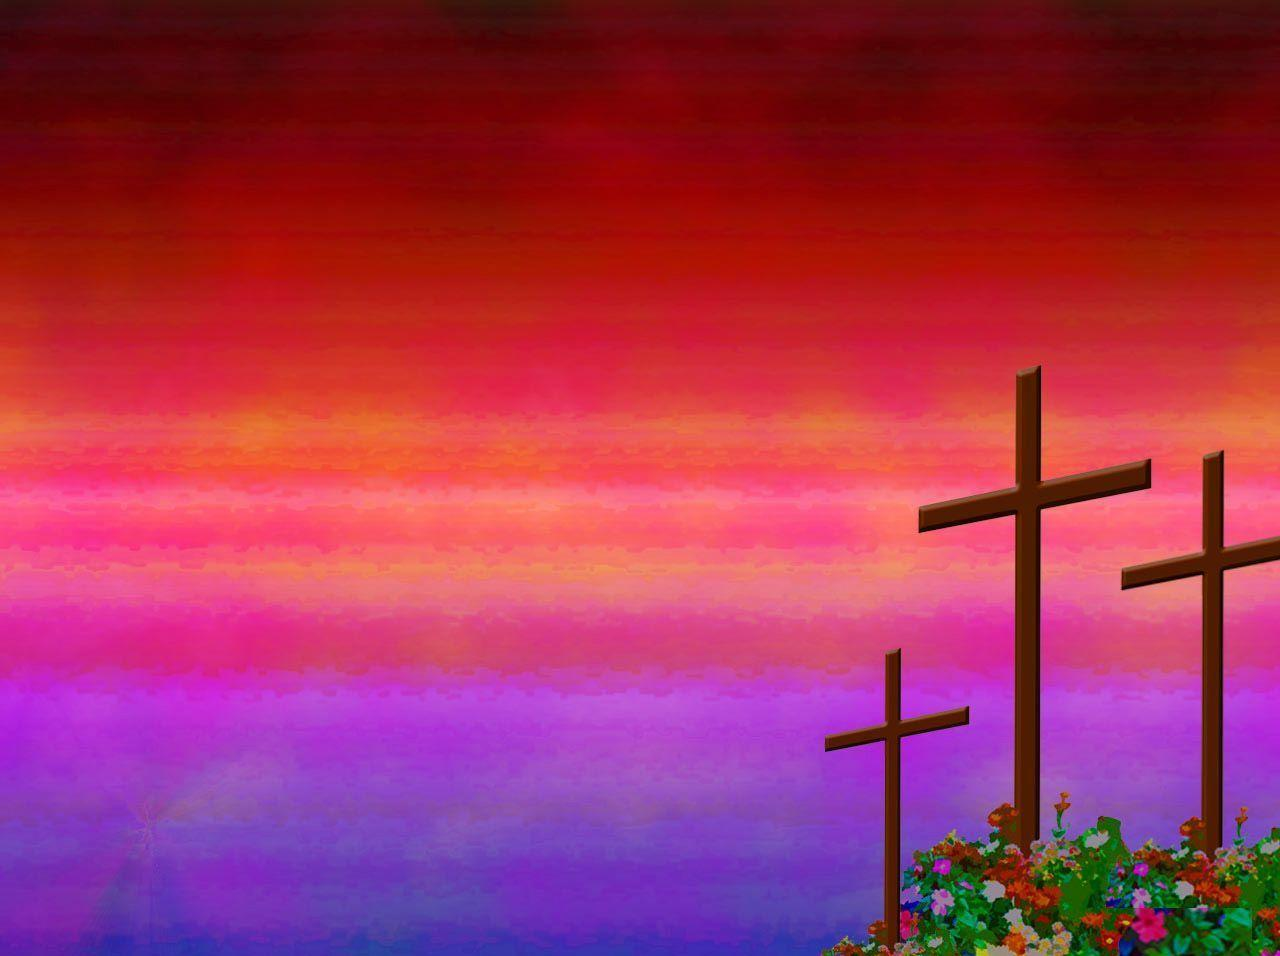 Christian Background Images - Wallpaper Cave